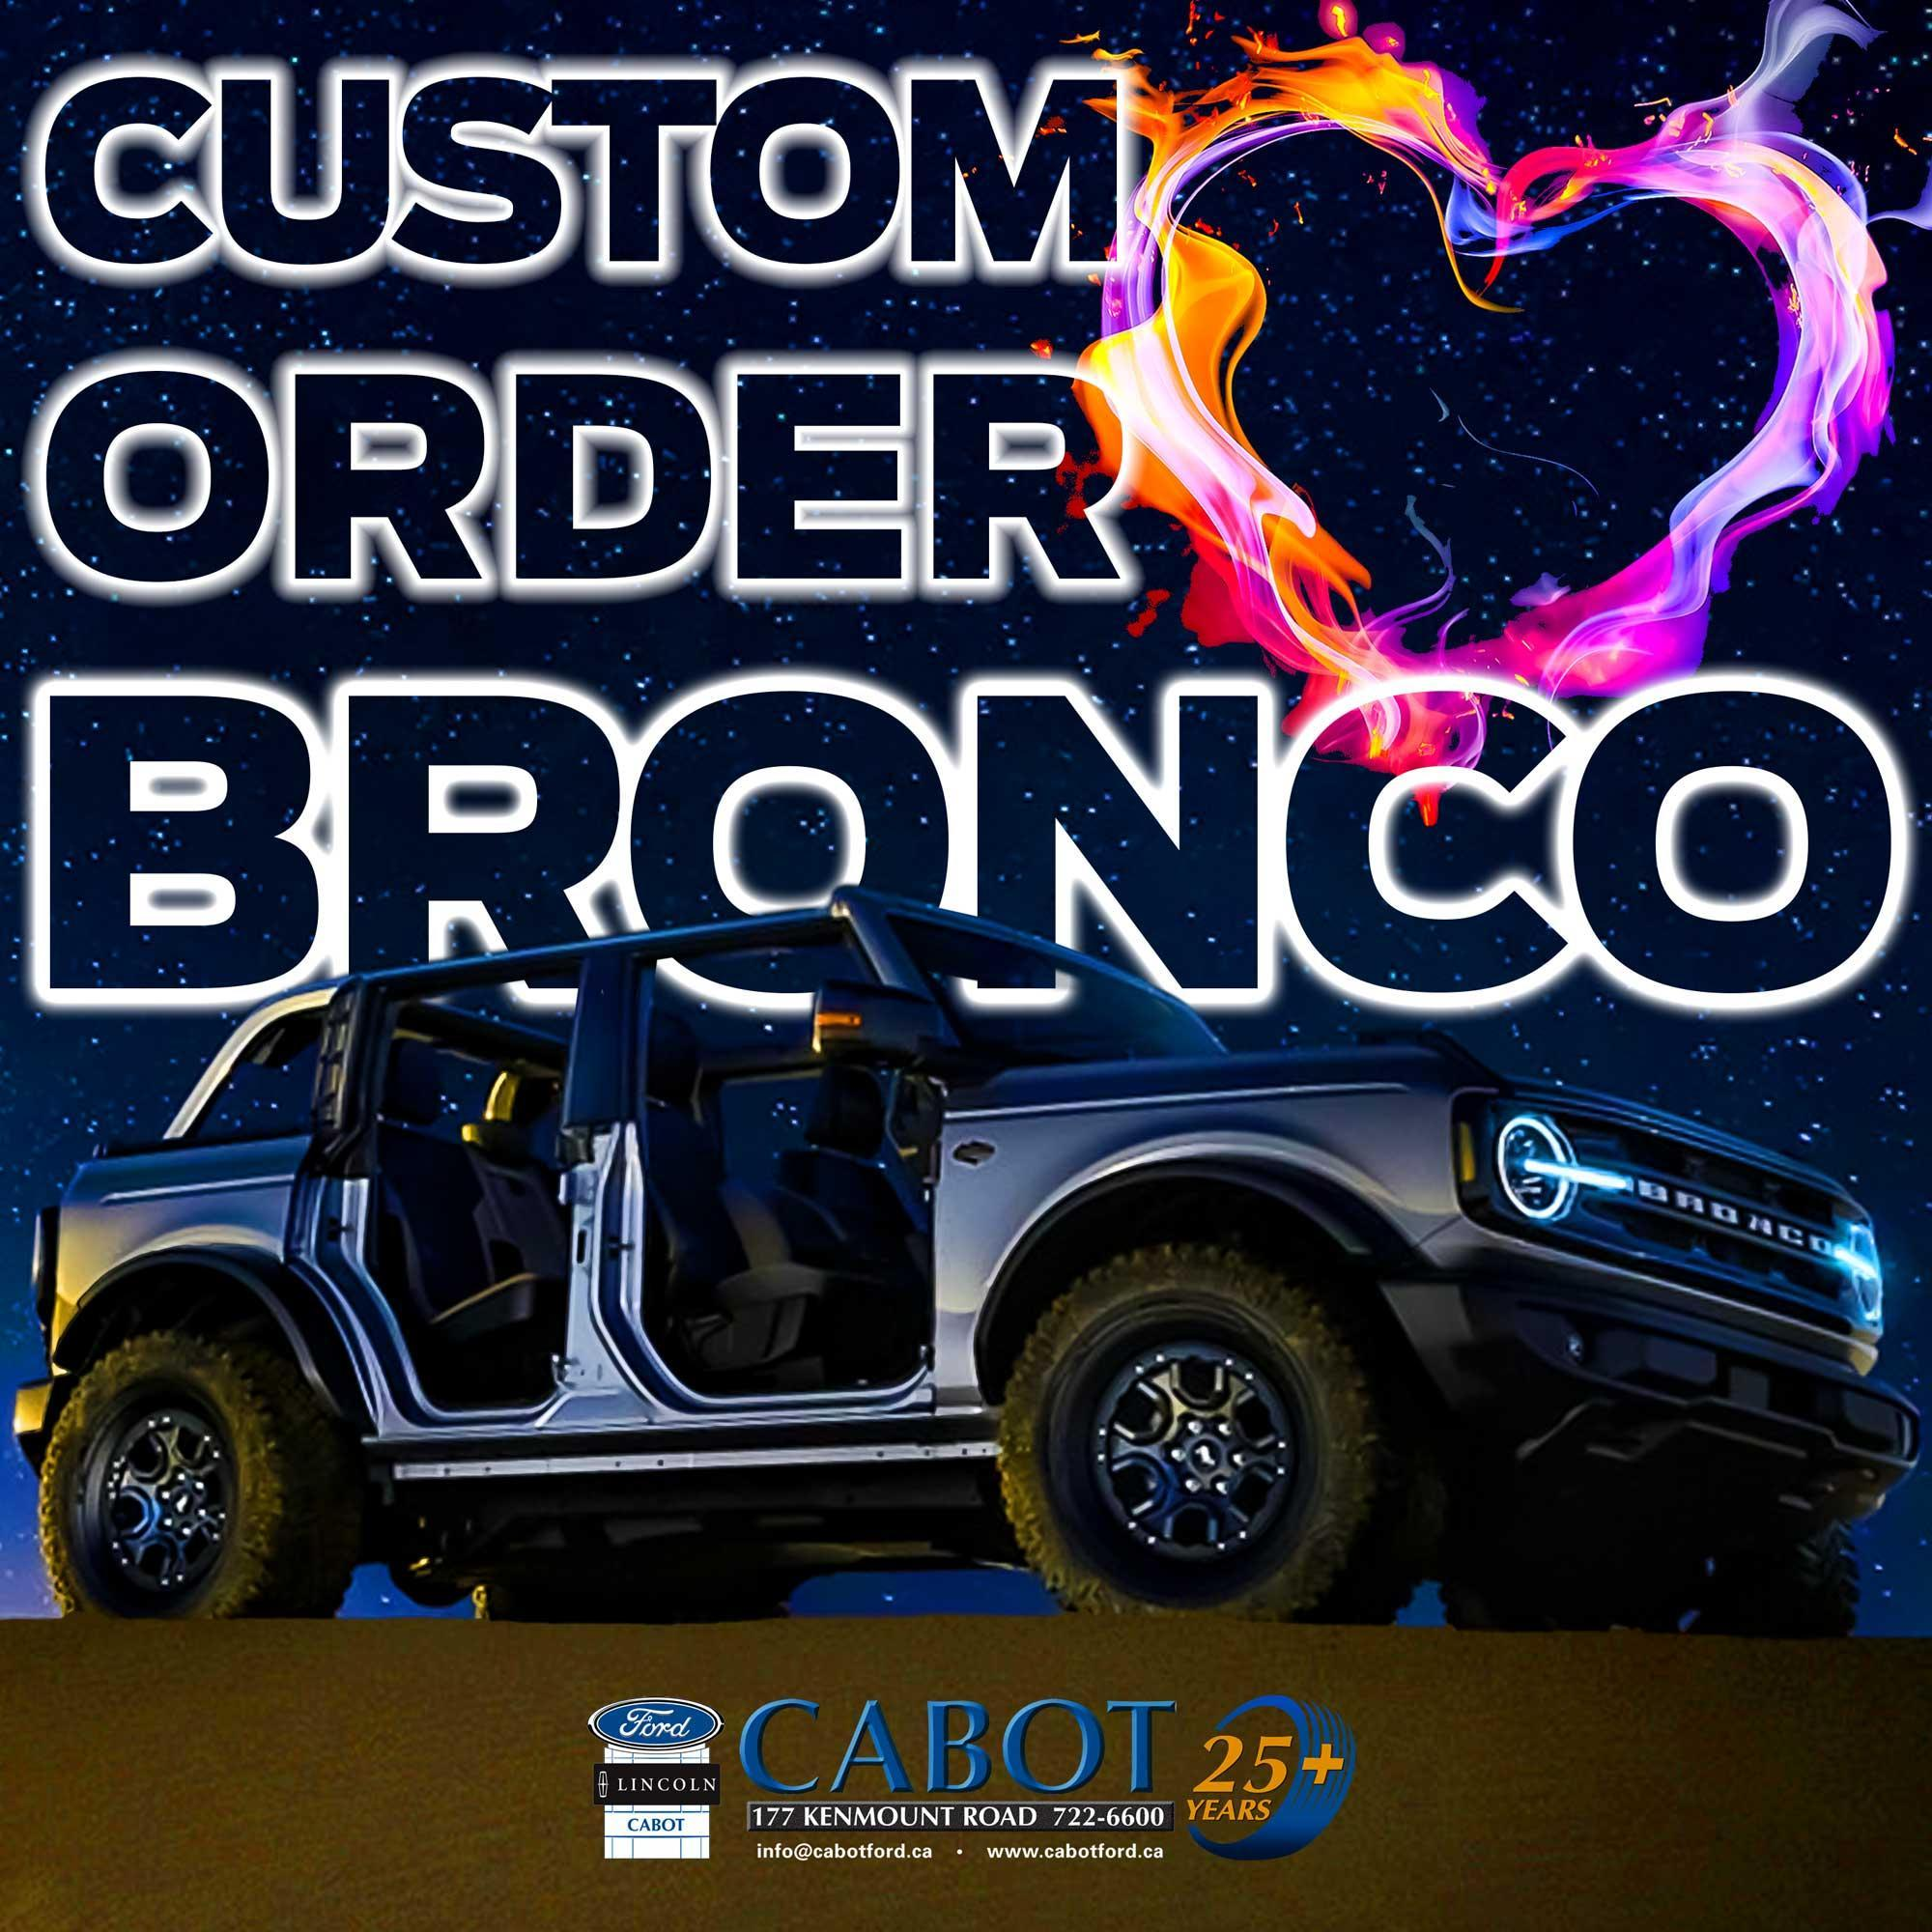 FACTORY ORDER a new Bronco in St. John's. CUSTOM BUILT to make it perfect for you.